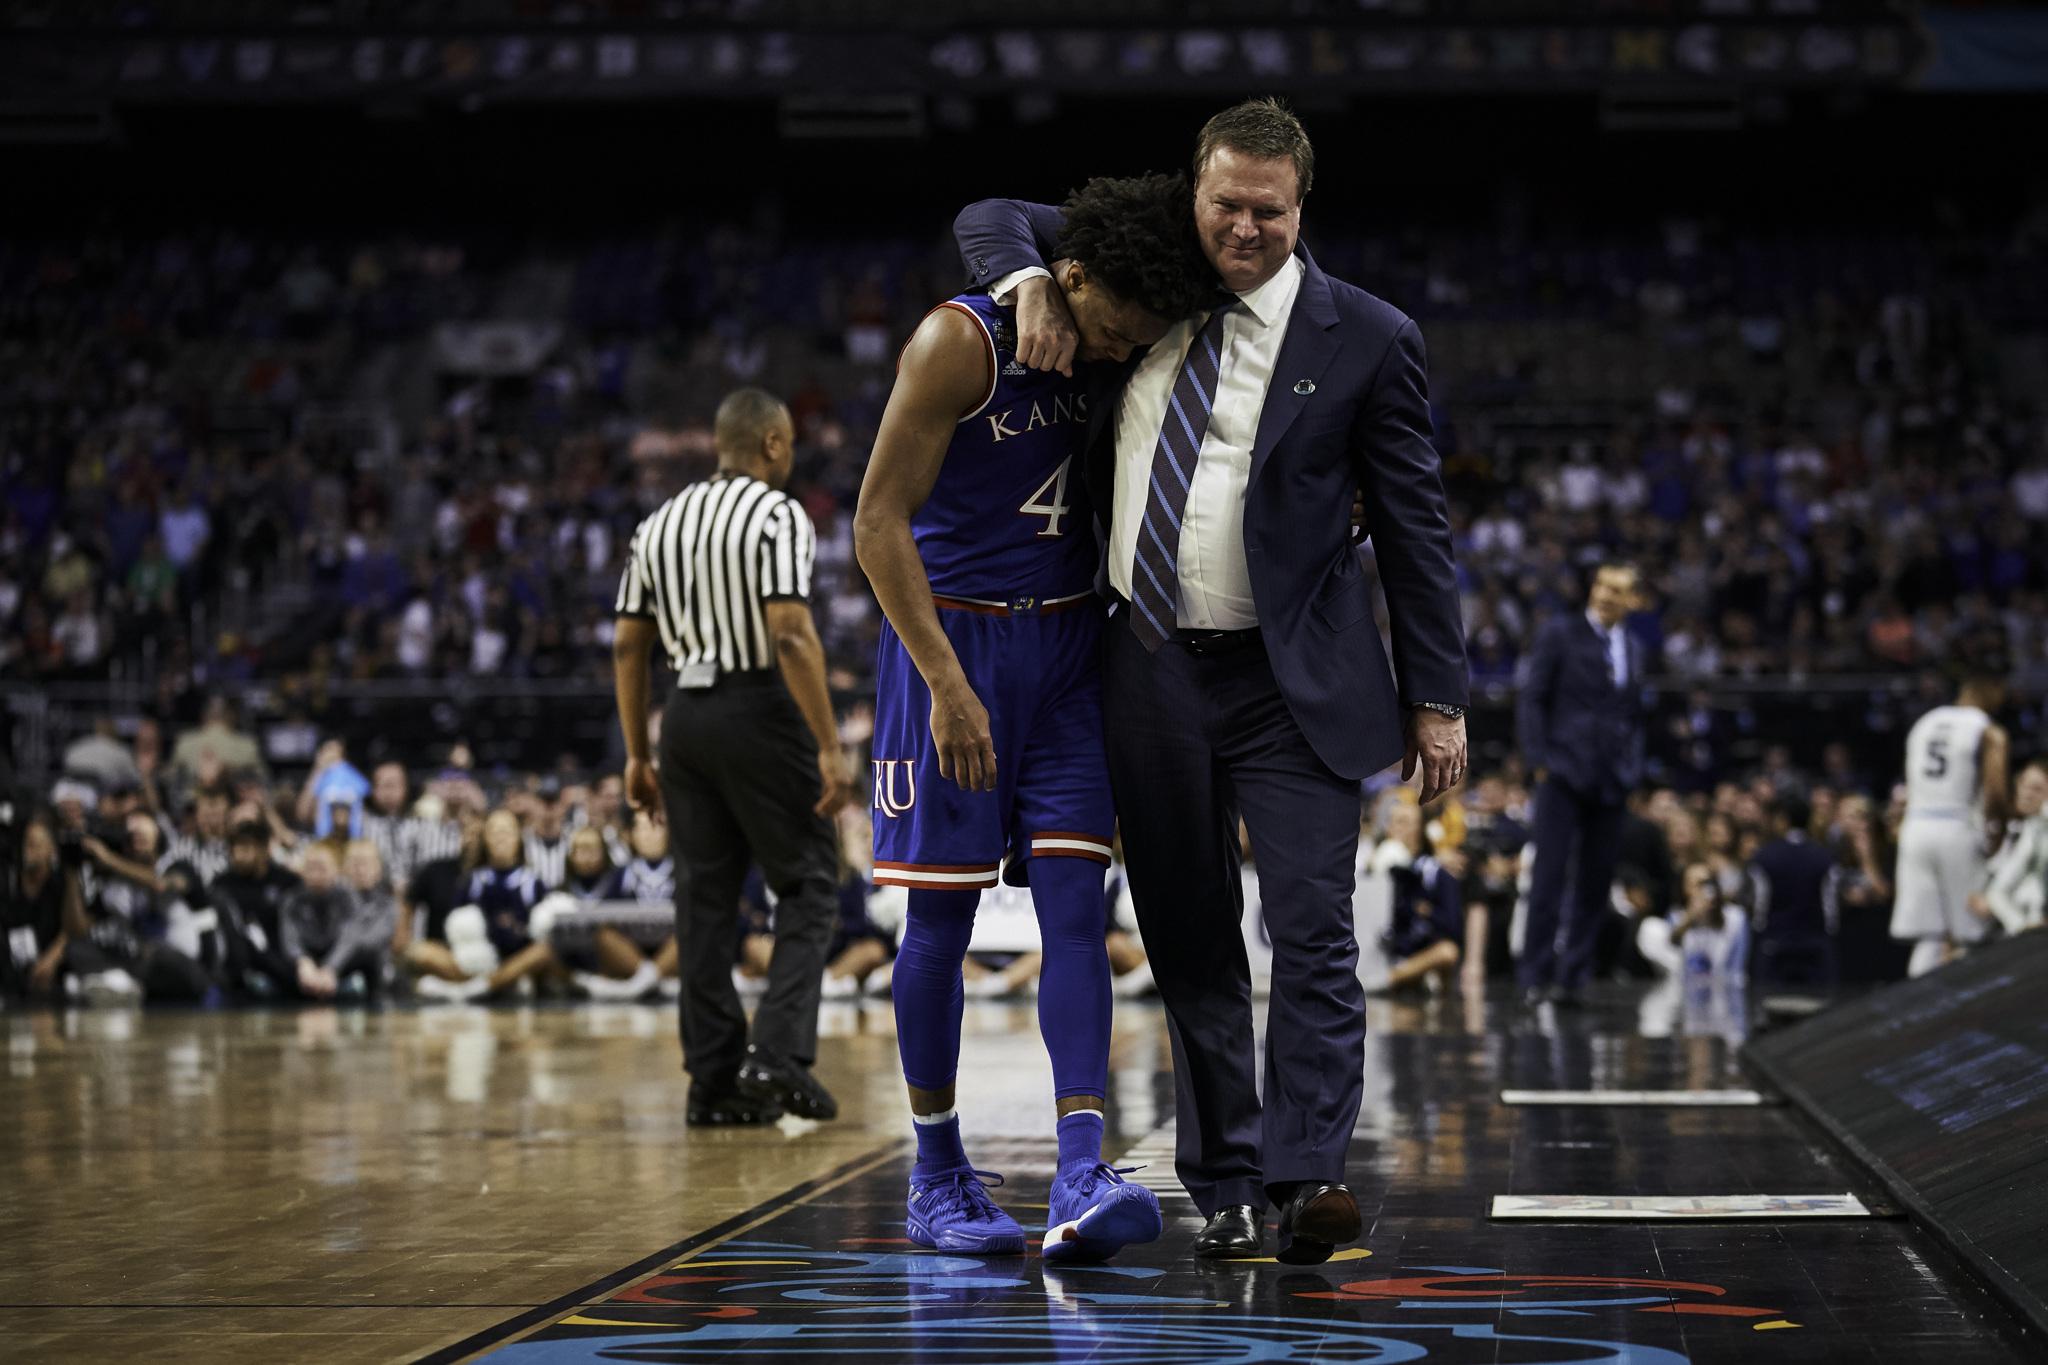 Devonte' Graham comes off the court for the last time as a Jayhawk, and Kansas coach Bill Self is there for a hug.  Sony A9, Sony 70-200mm f2.8 GM